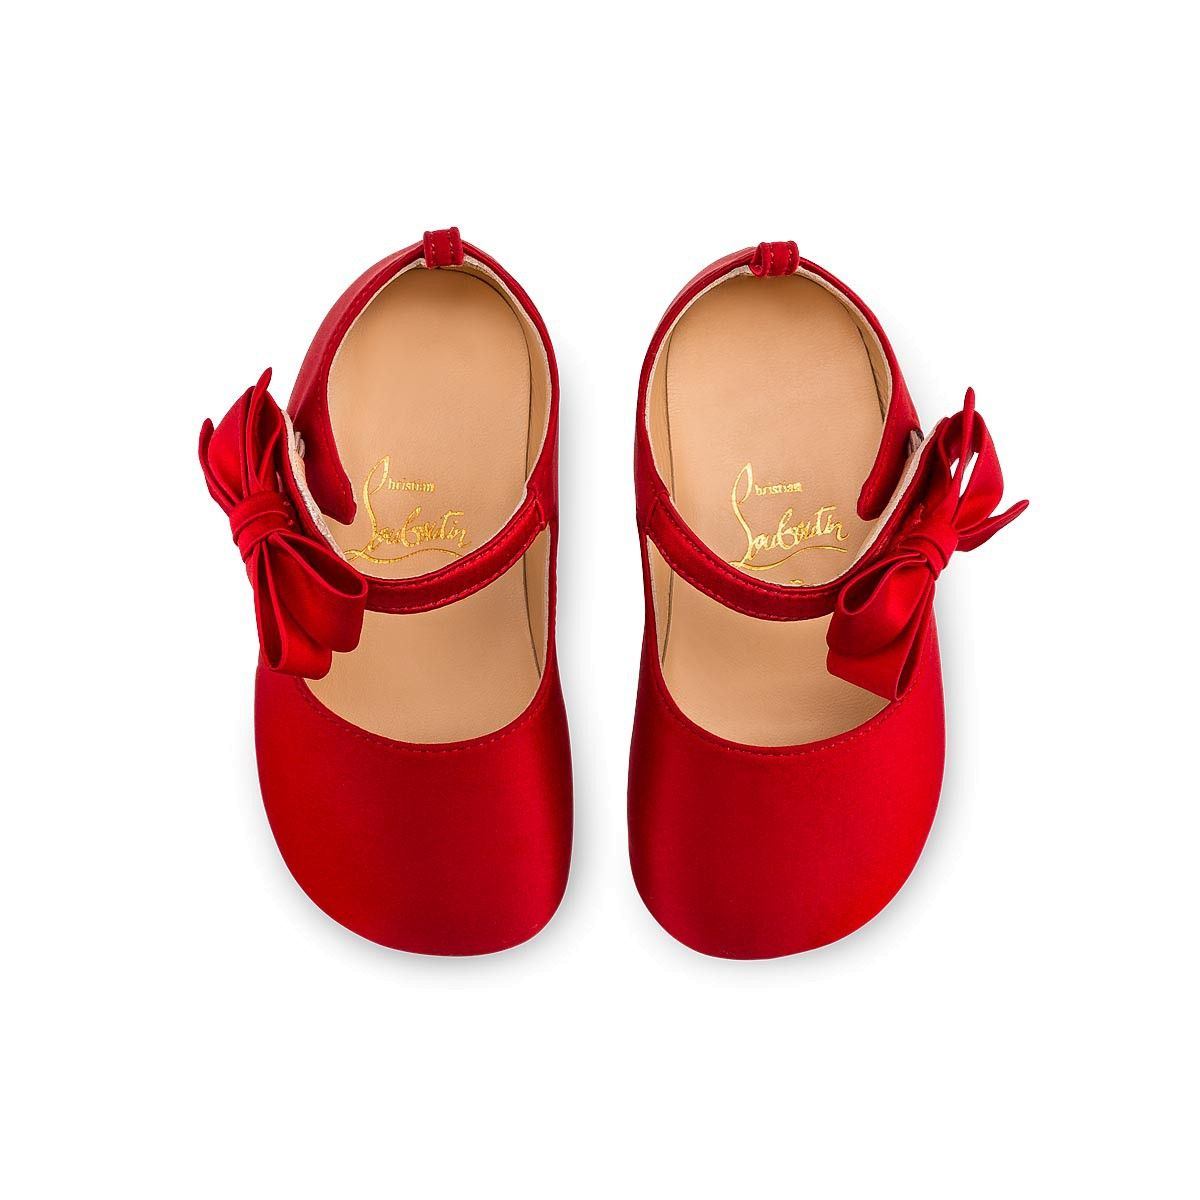 c28e76823422 Loubi Red Baby Shoes | Christian Louboutin | Elegant and so playful, this  beautiful baby shoe is the epitome of trendy sophistication in the baby's  world.